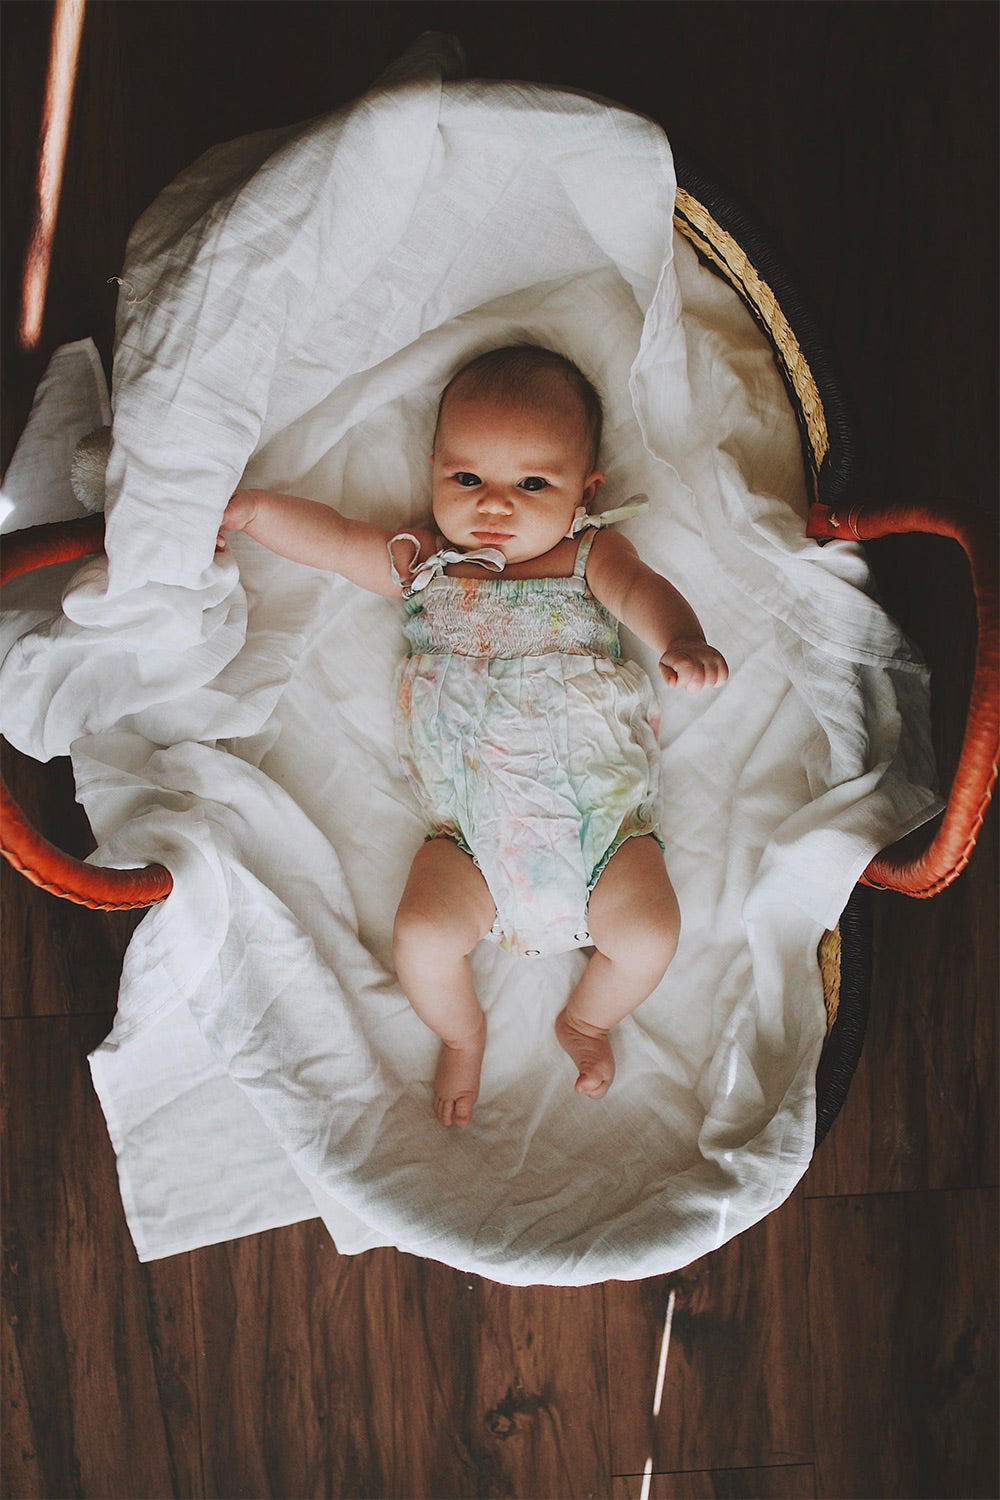 Little baby in Moses Basket